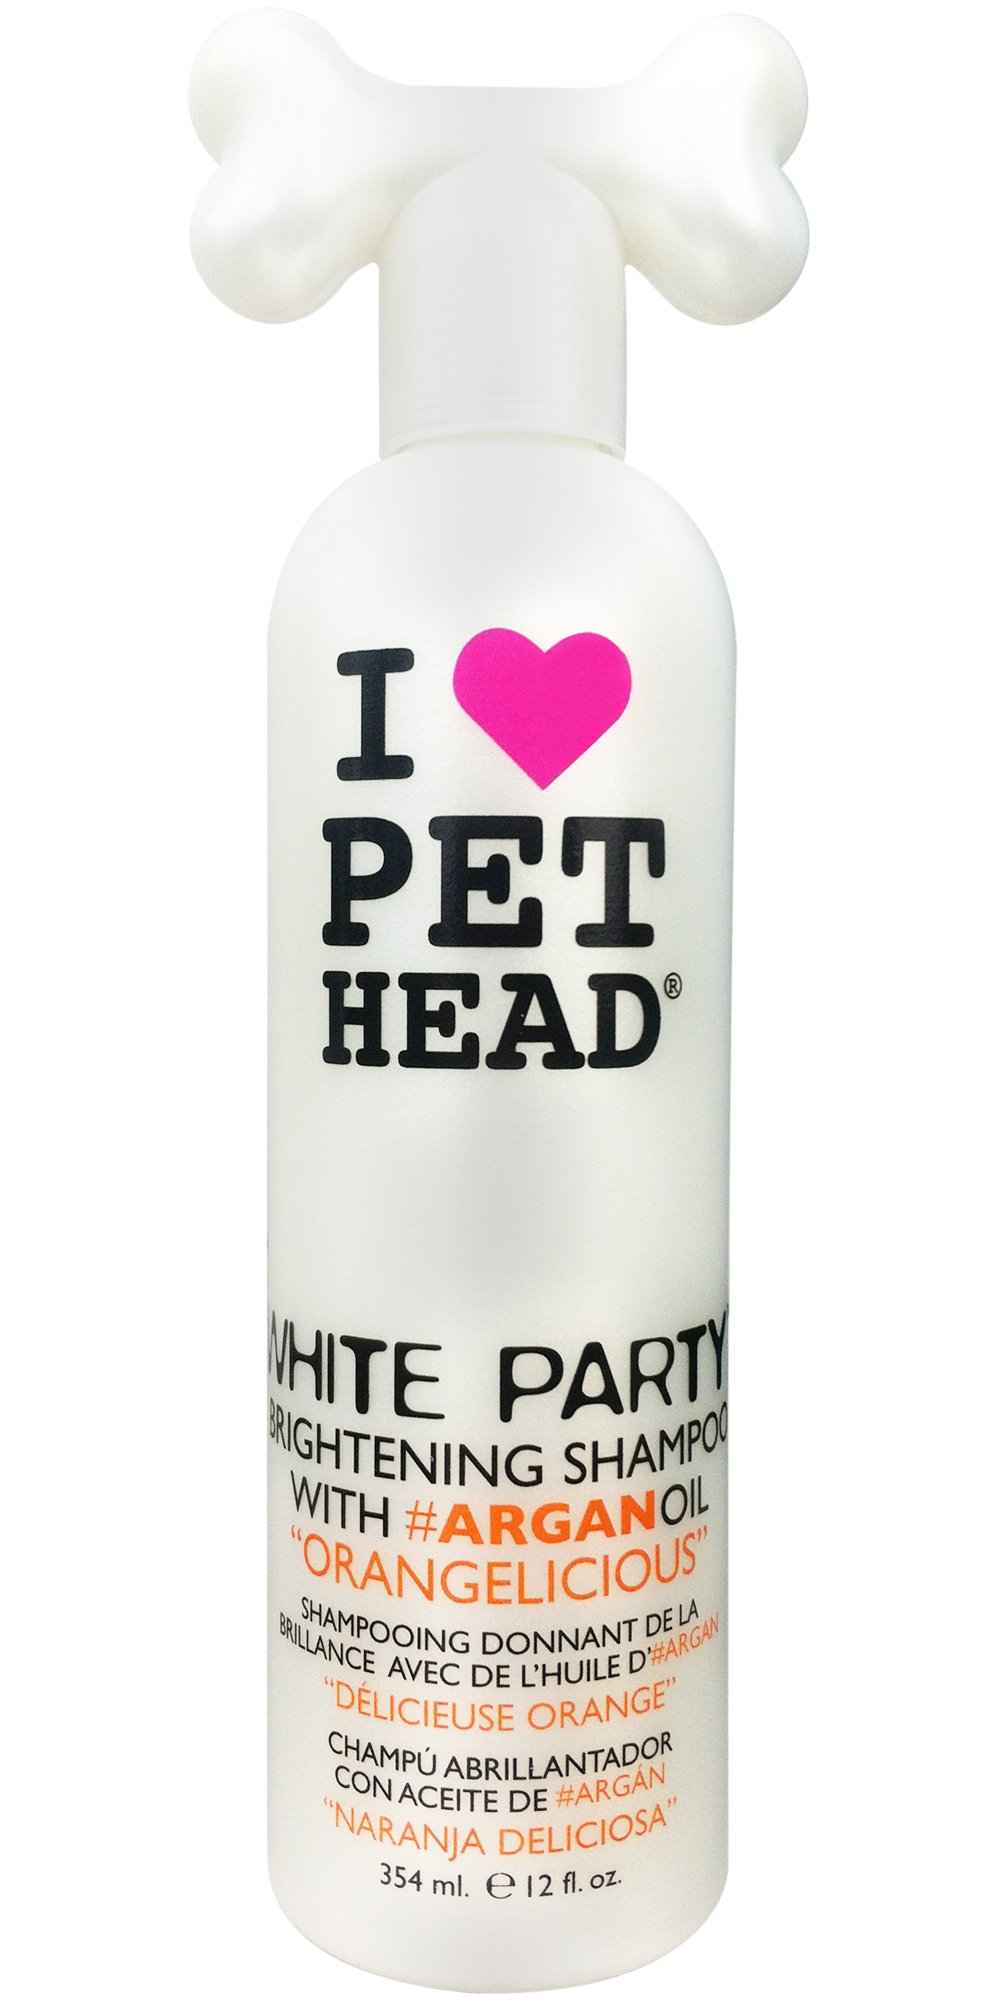 Pet Head White Party Brightening Shampoo, 12oz